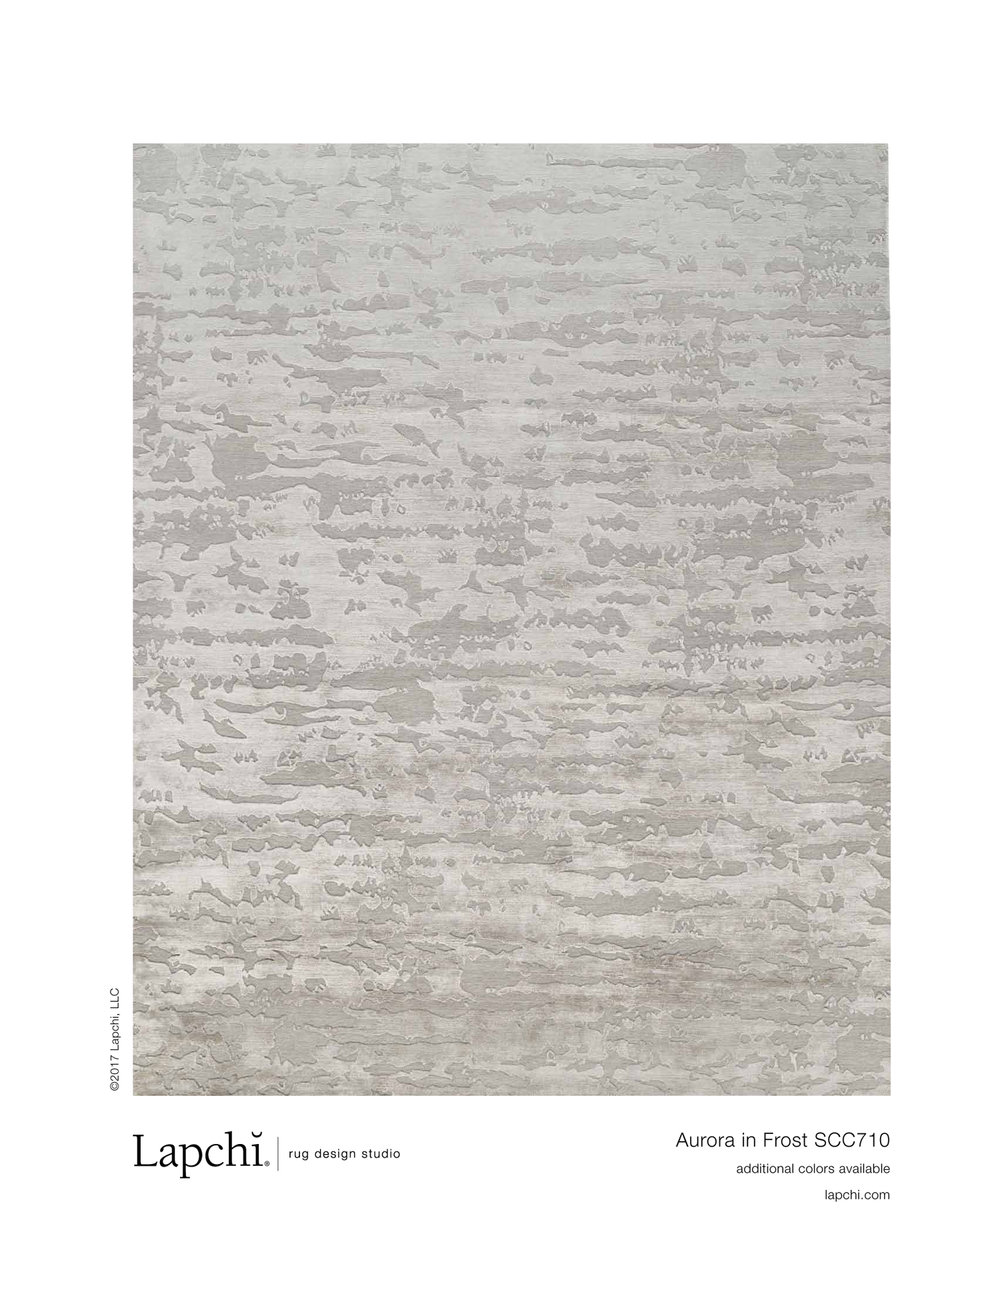 Aurora area rug in frost from Lapchi rug design studio.